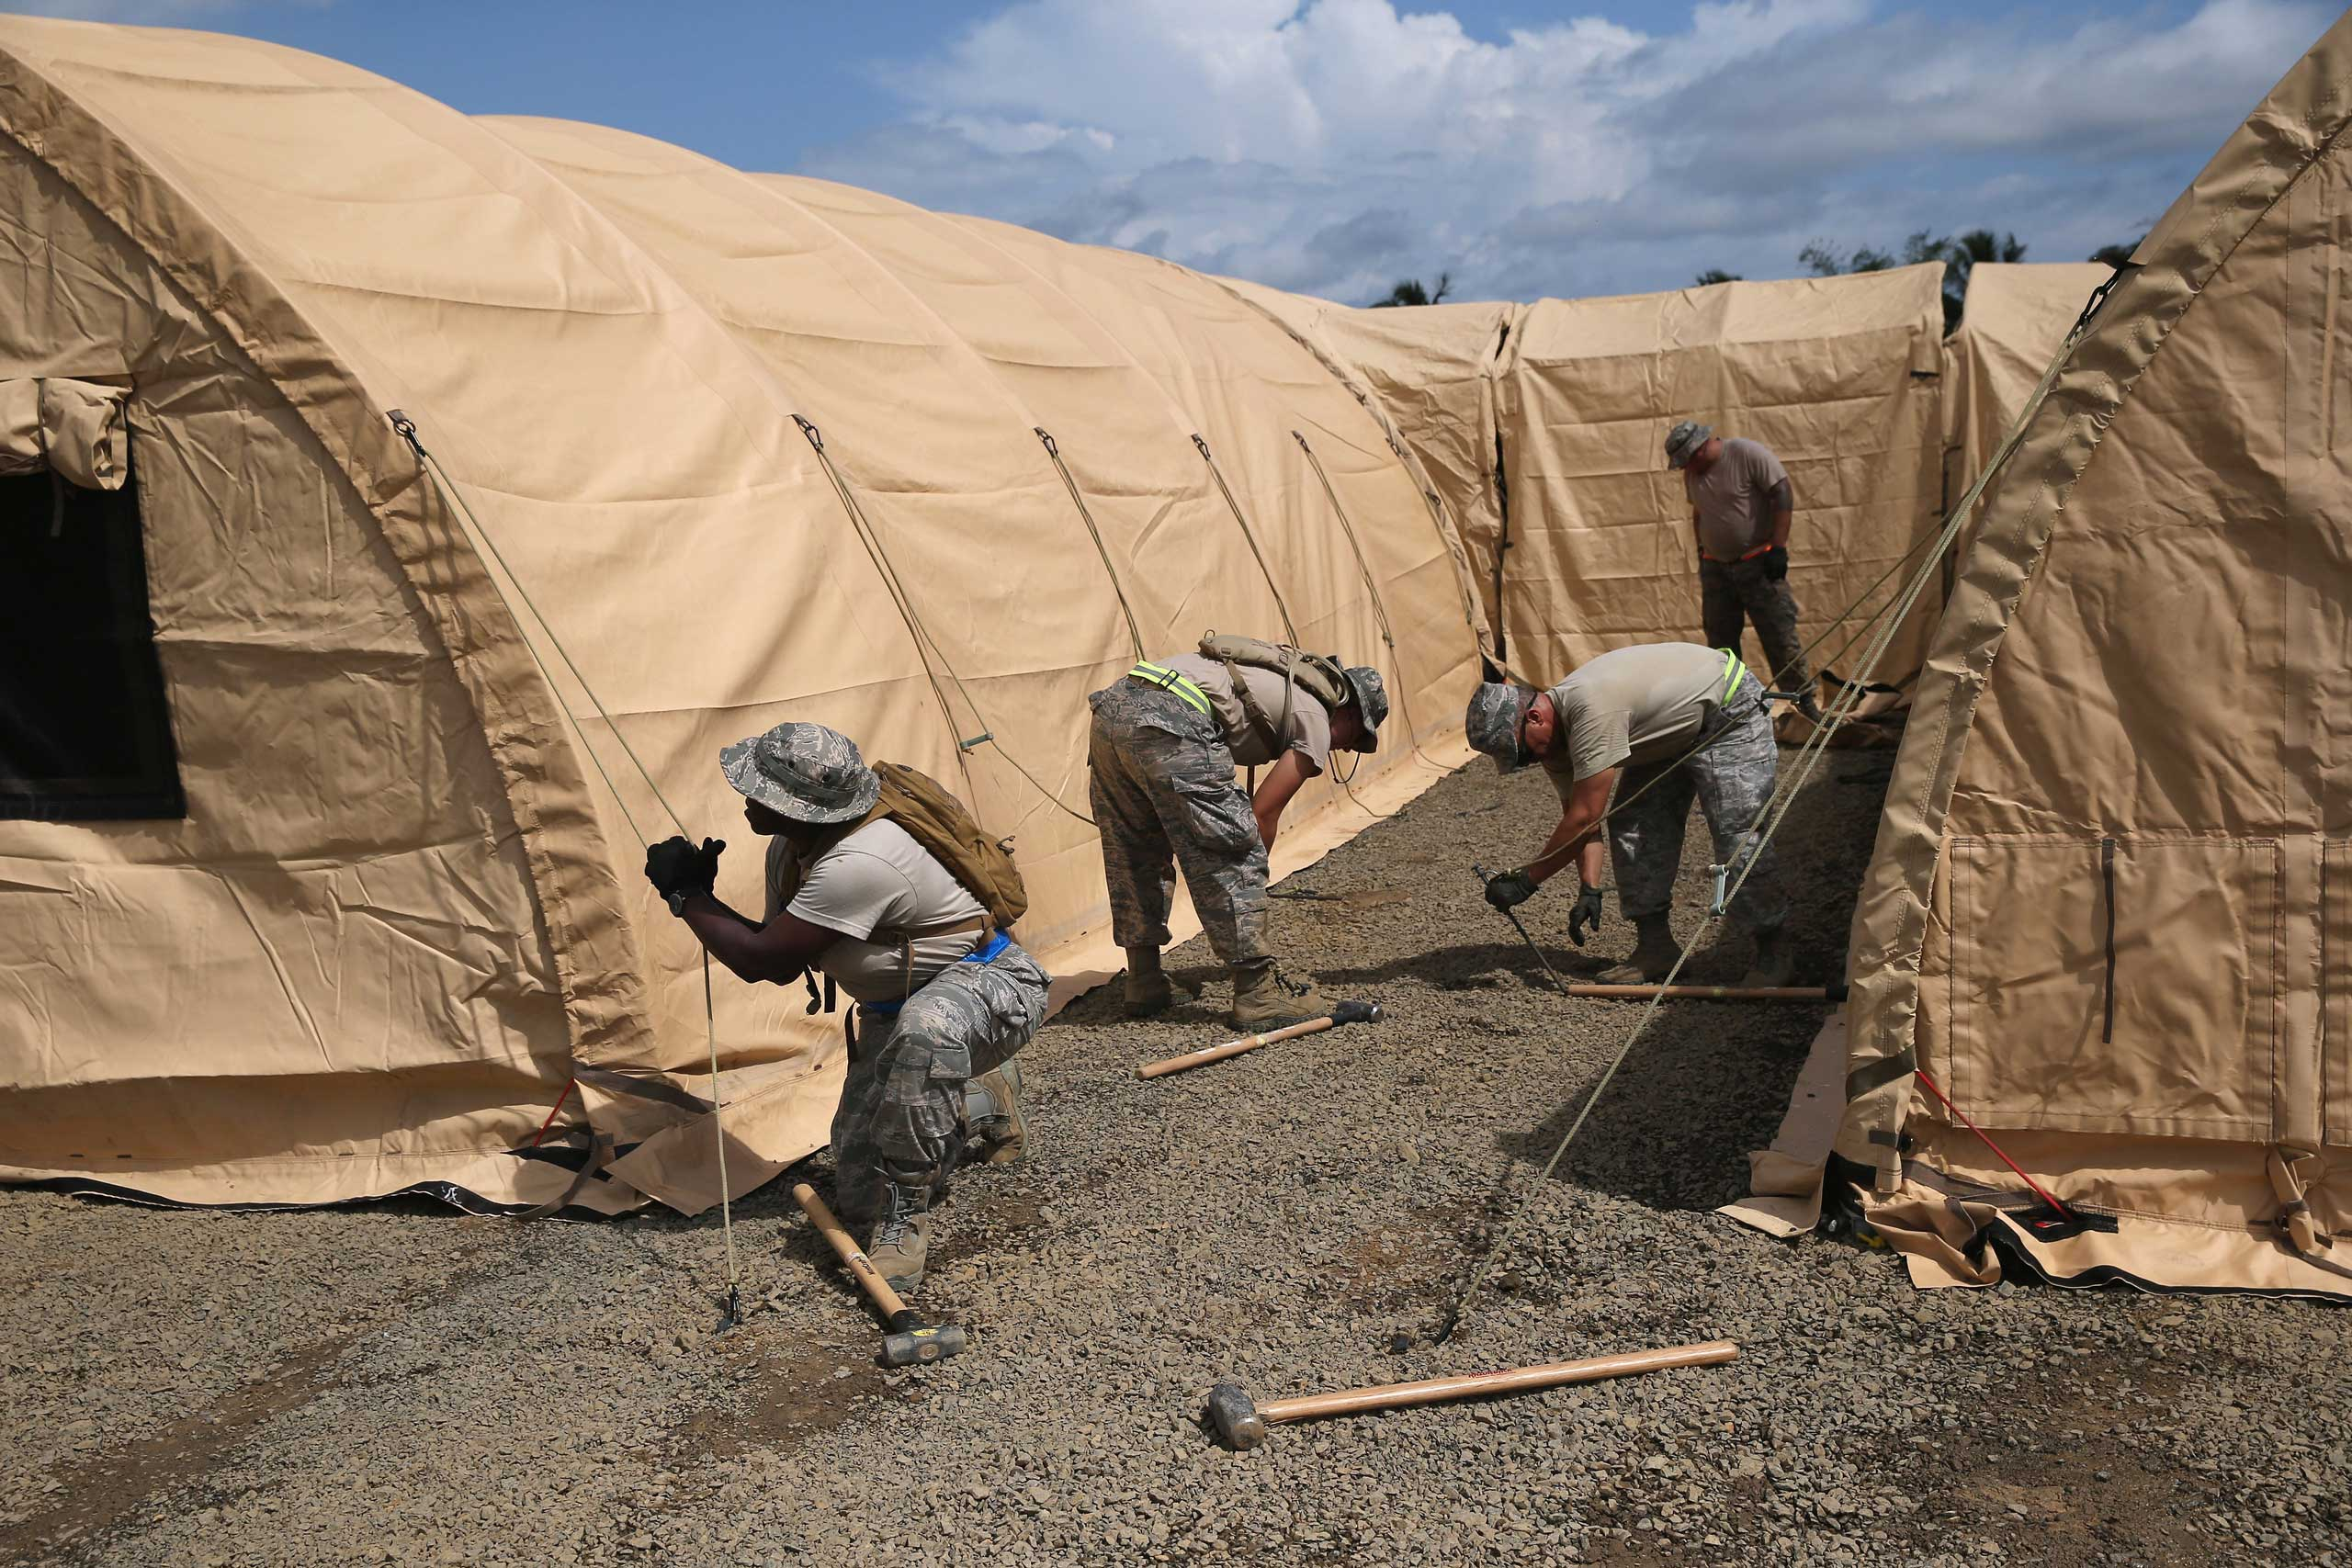 U.S. Air Force personnel put up tents to house a 25-bed U.S.-built hospital for sick Liberian health workers as part in Operation United Assistance on Oct. 9, 2014 in Monrovia, Liberia.